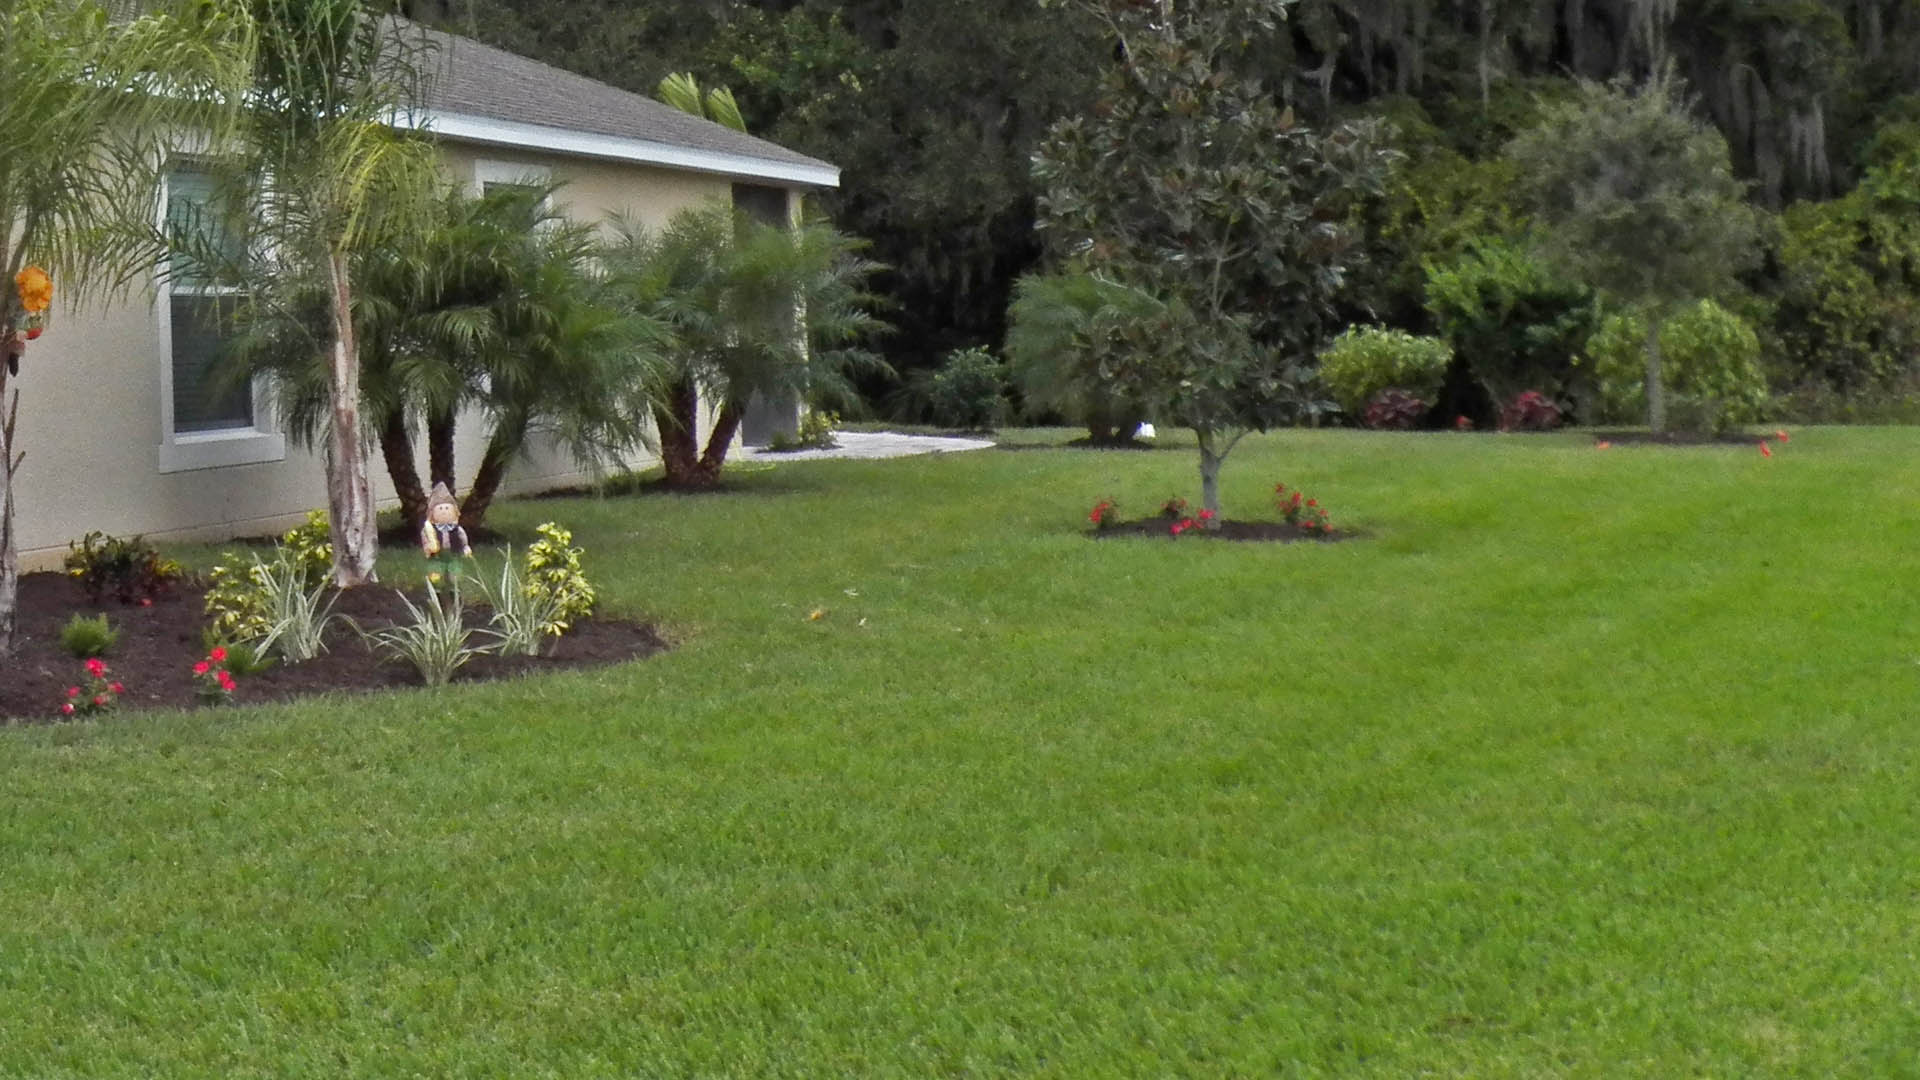 Professionally maintained lawn in Palmetto, FL.